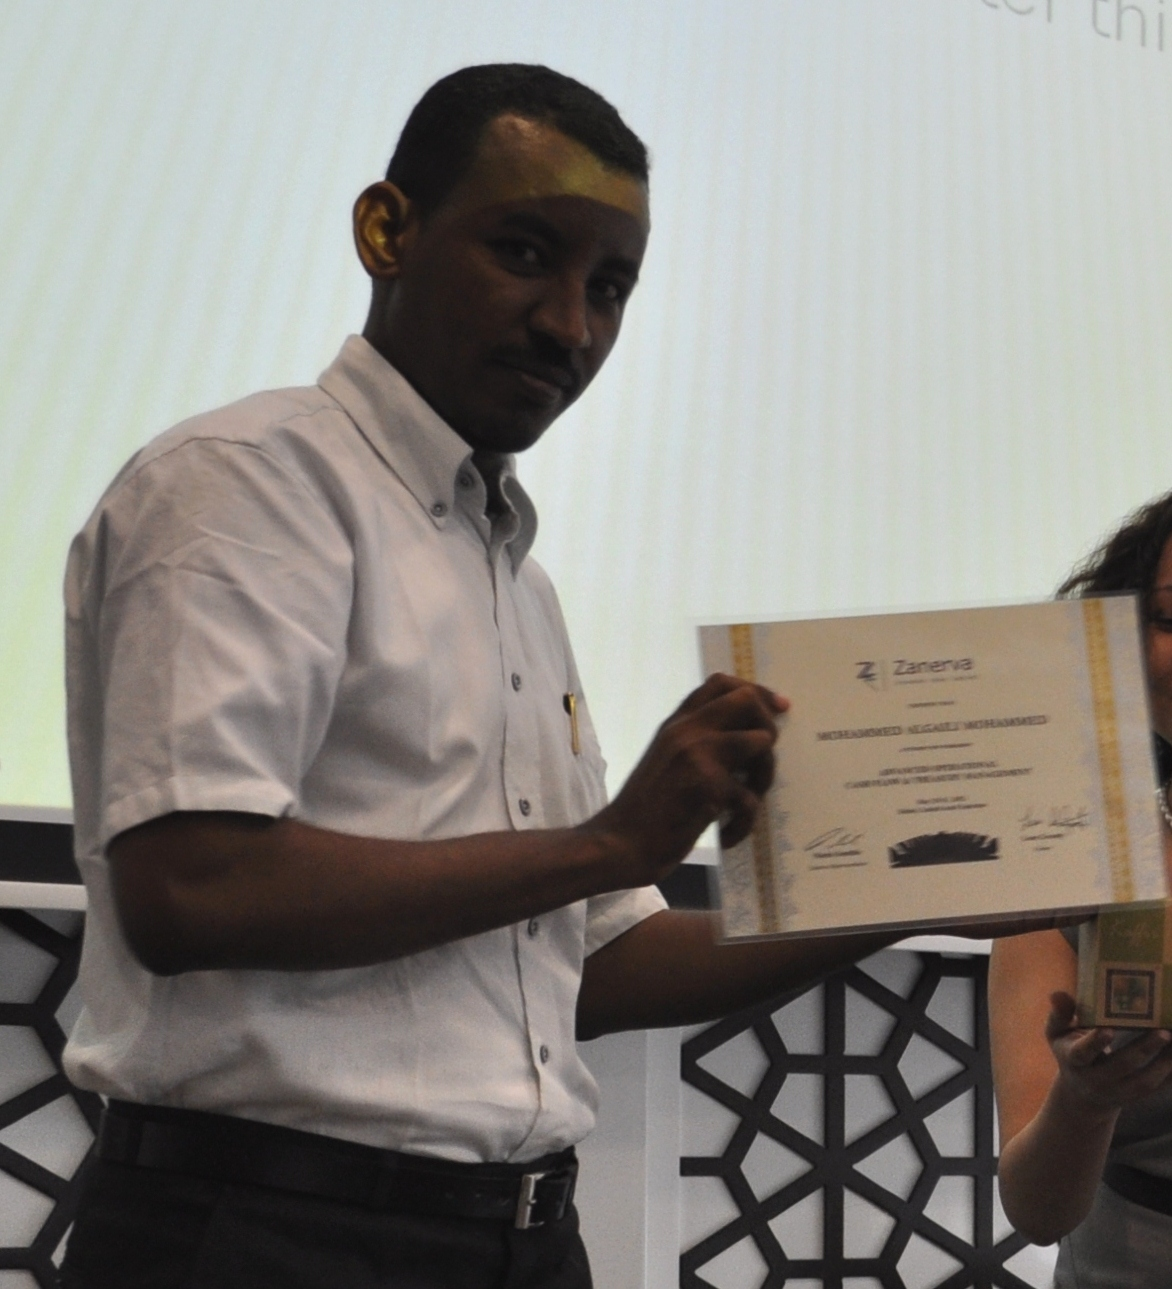 Mohammed Algaili Mohammed (Senior Budget & Cost Accountant)    shows the certificate of workshop participation he received by attending the Advanced Operational Cash Flow & Liquidity Risk Management Workshop in Dubai.